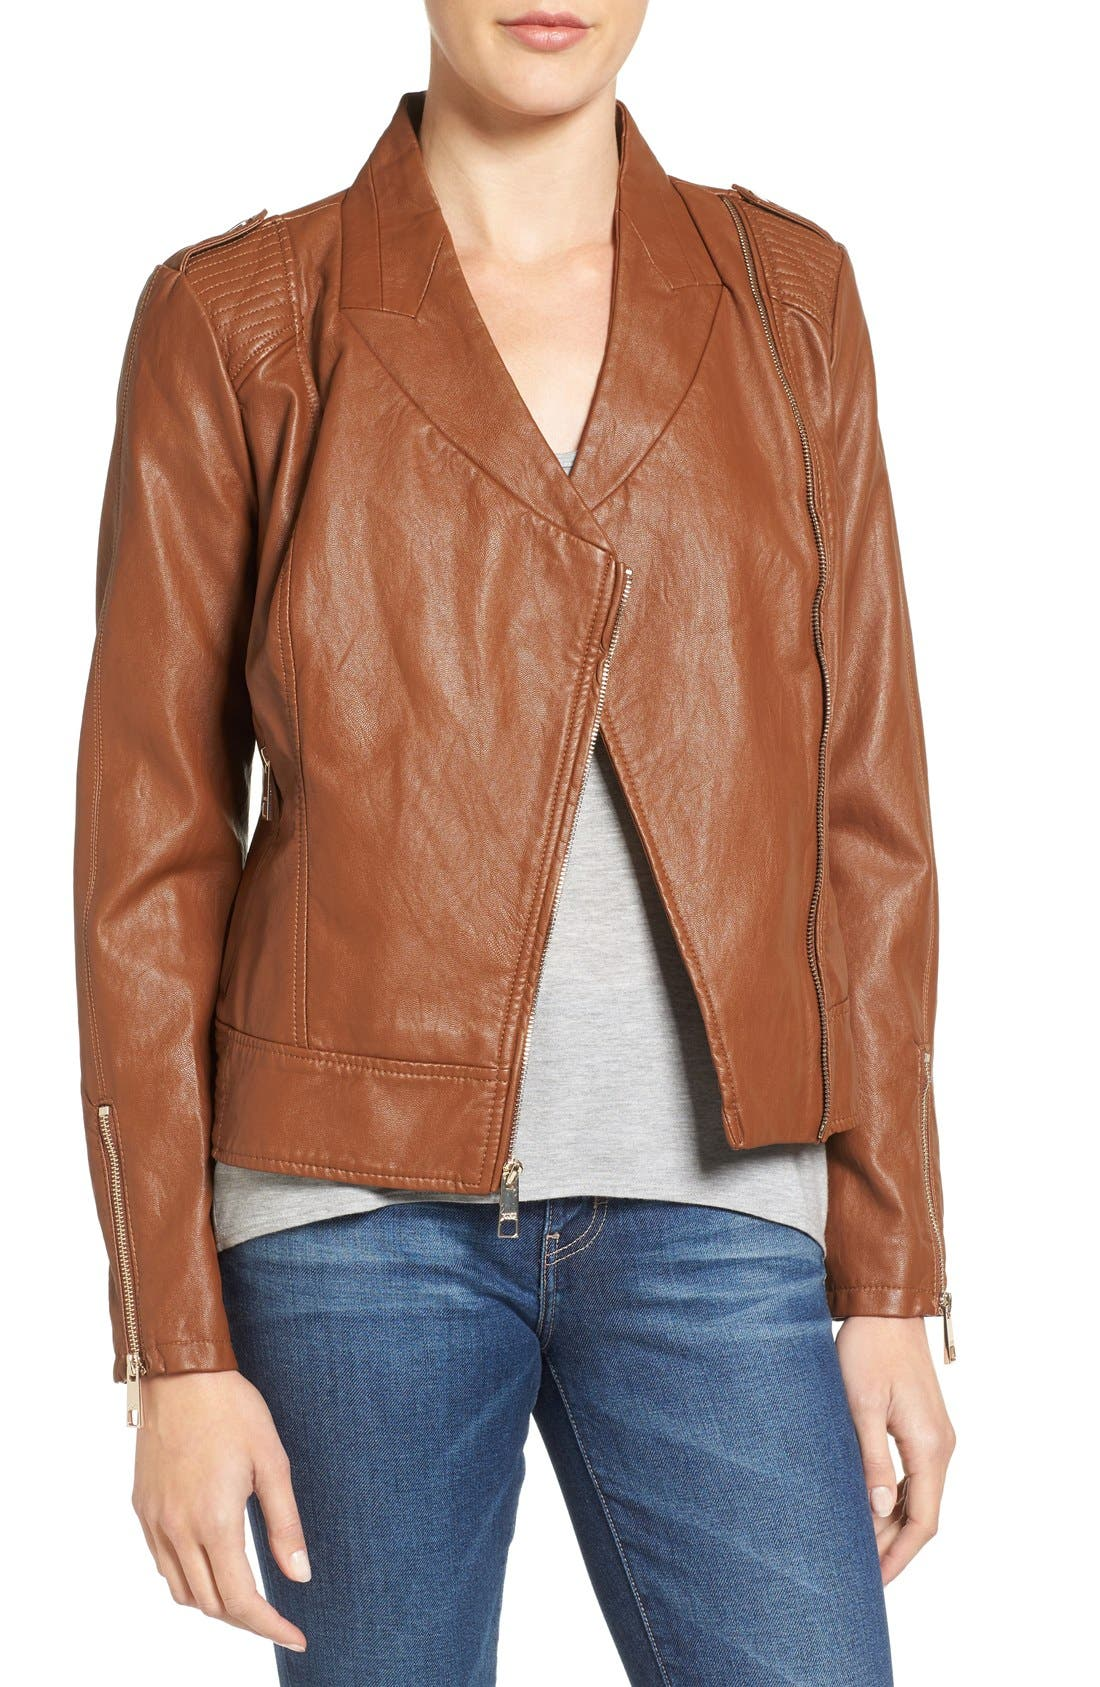 Alternate Image 1 Selected - GUESS Faux Leather Moto Jacket (Regular & Petite)